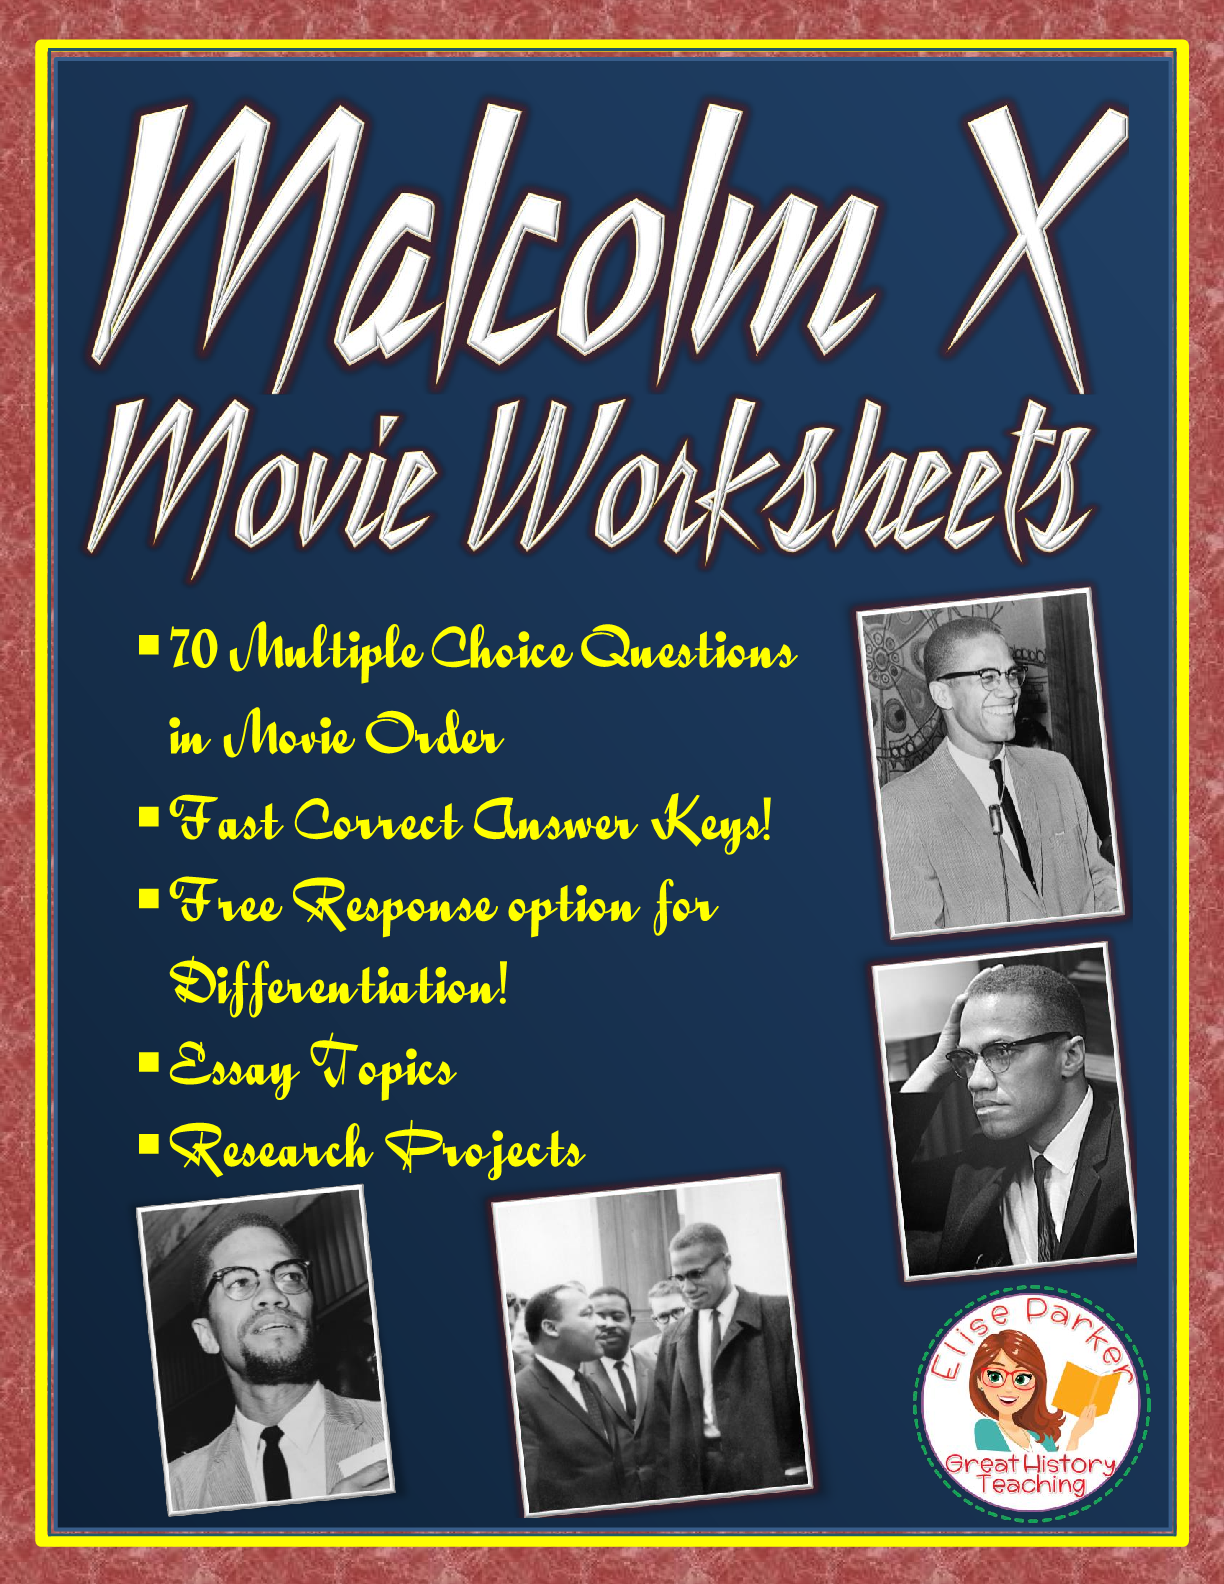 Malcolm X Movie Worksheets Essay Prompts And Research